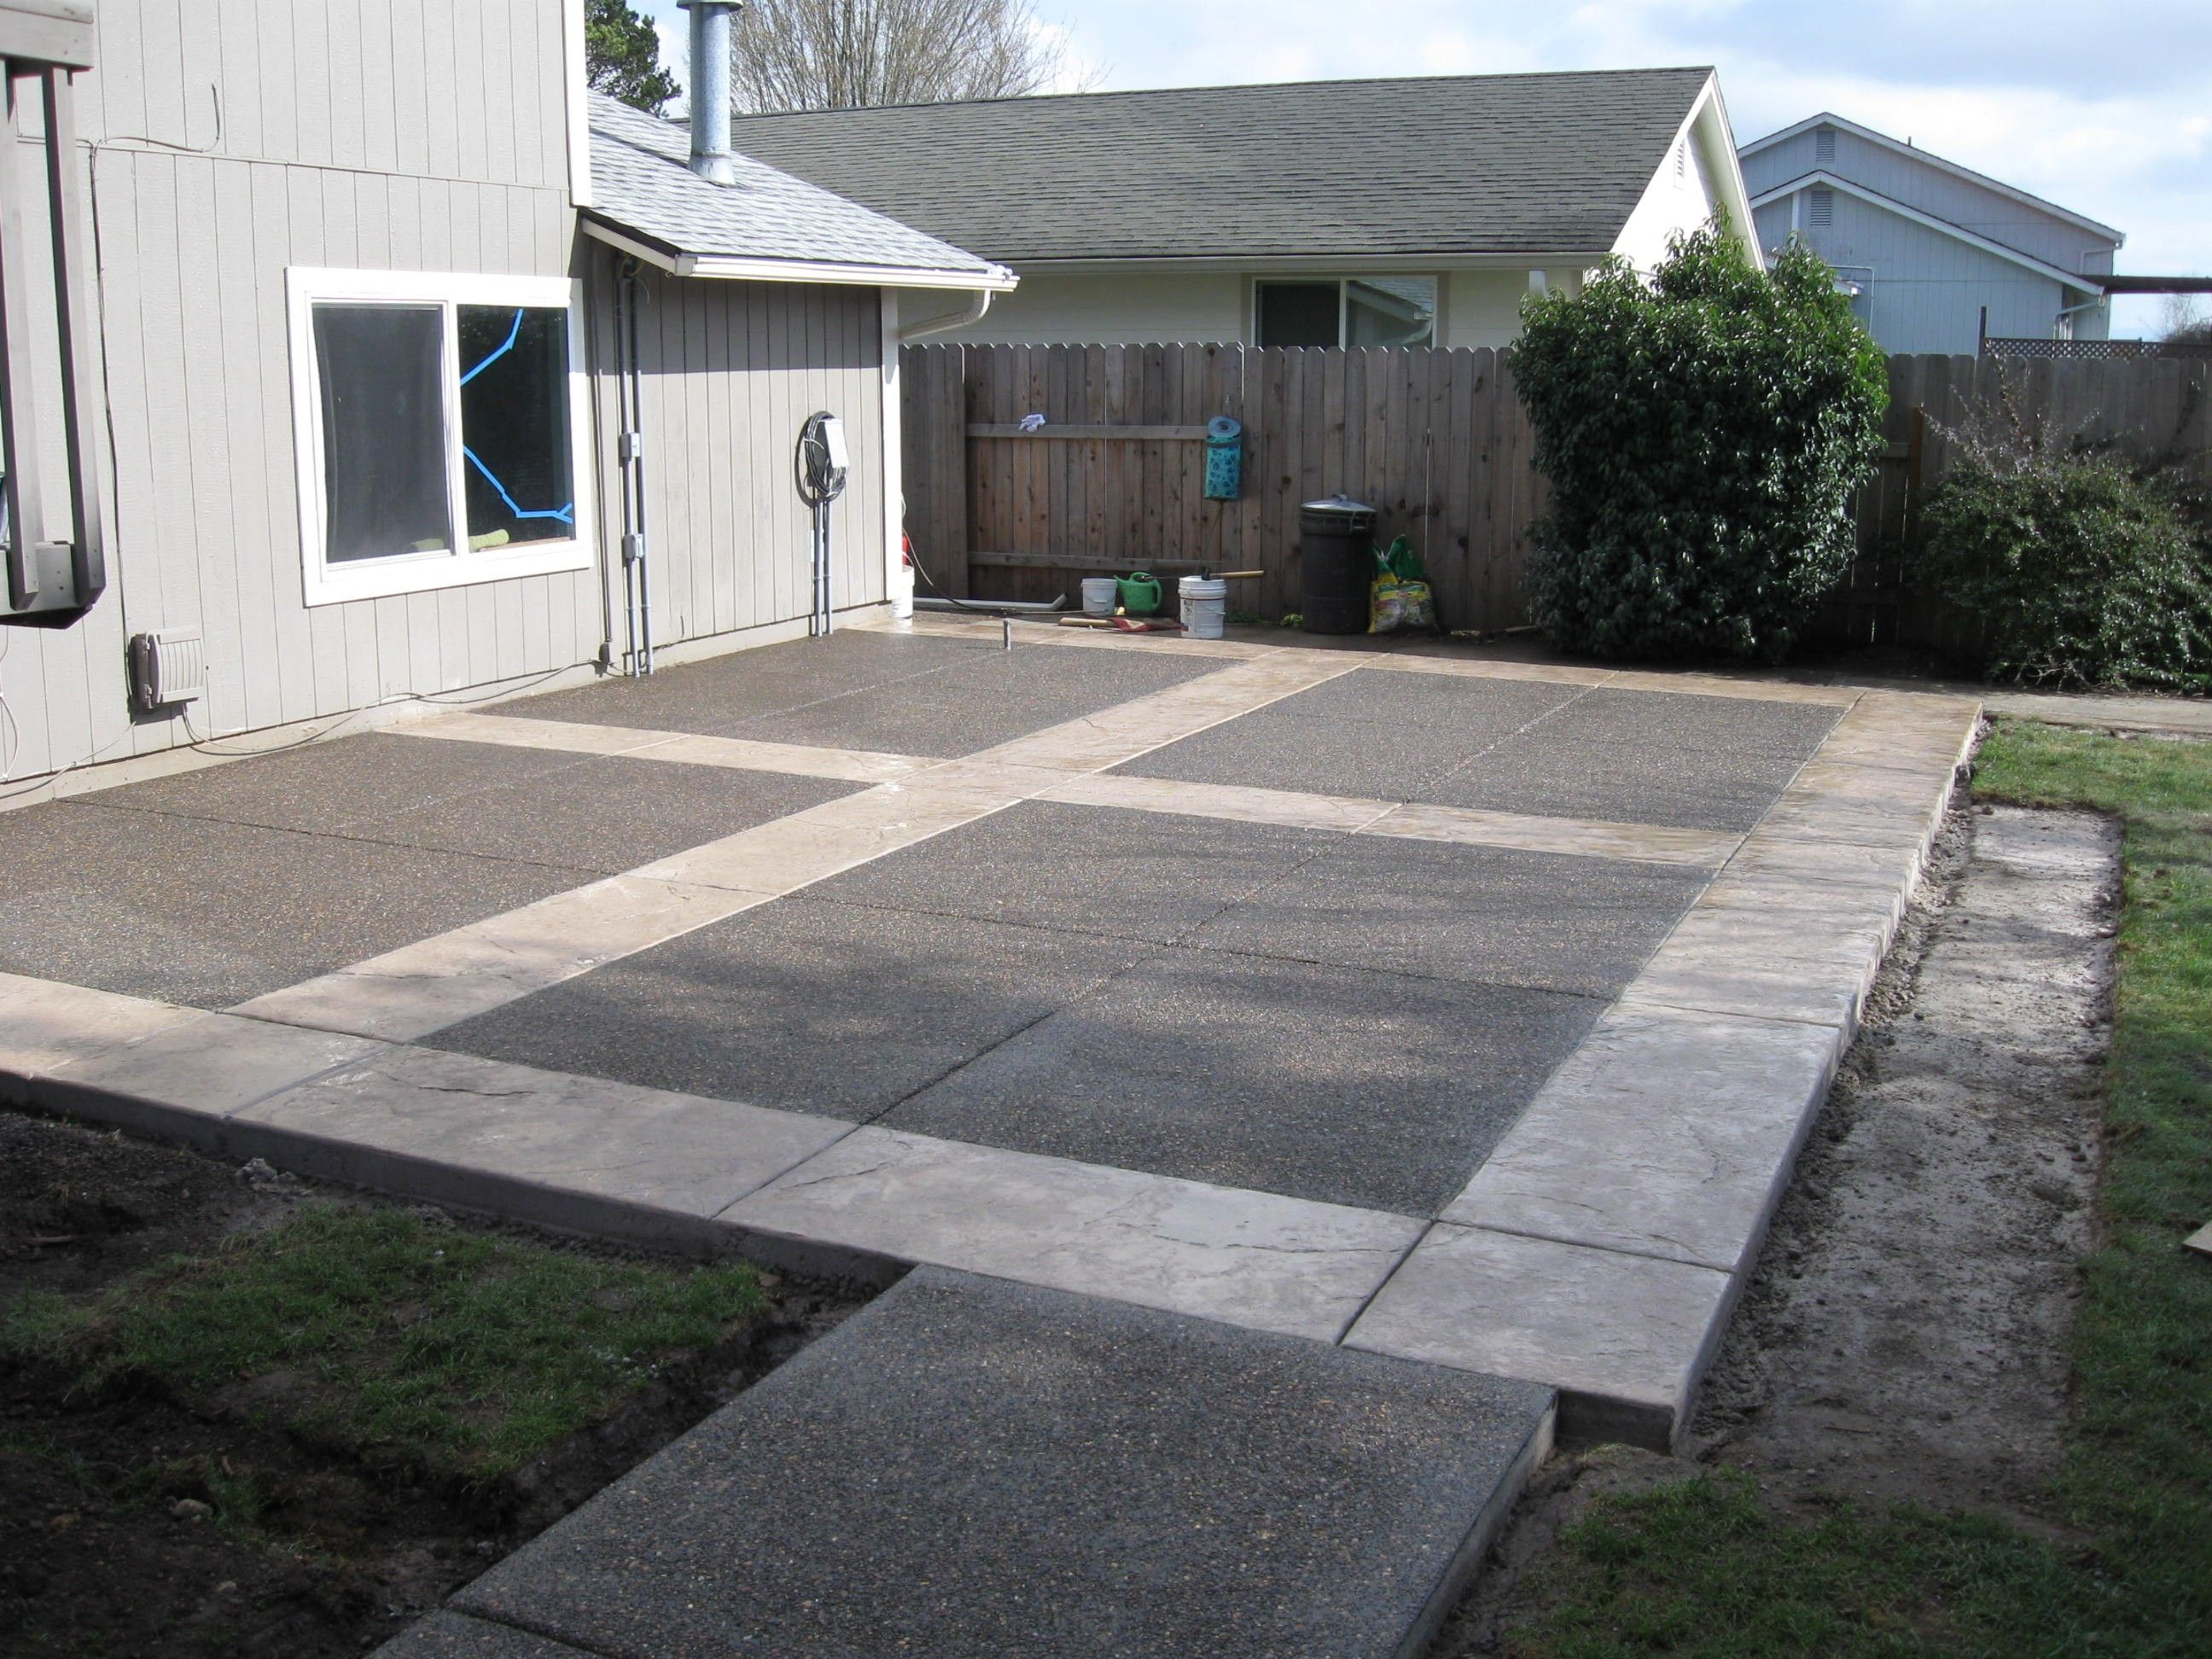 Easy Cement Backyards Google Search Backyard Cement Patio intended for 10 Some of the Coolest Ways How to Make Cement Ideas For Backyard